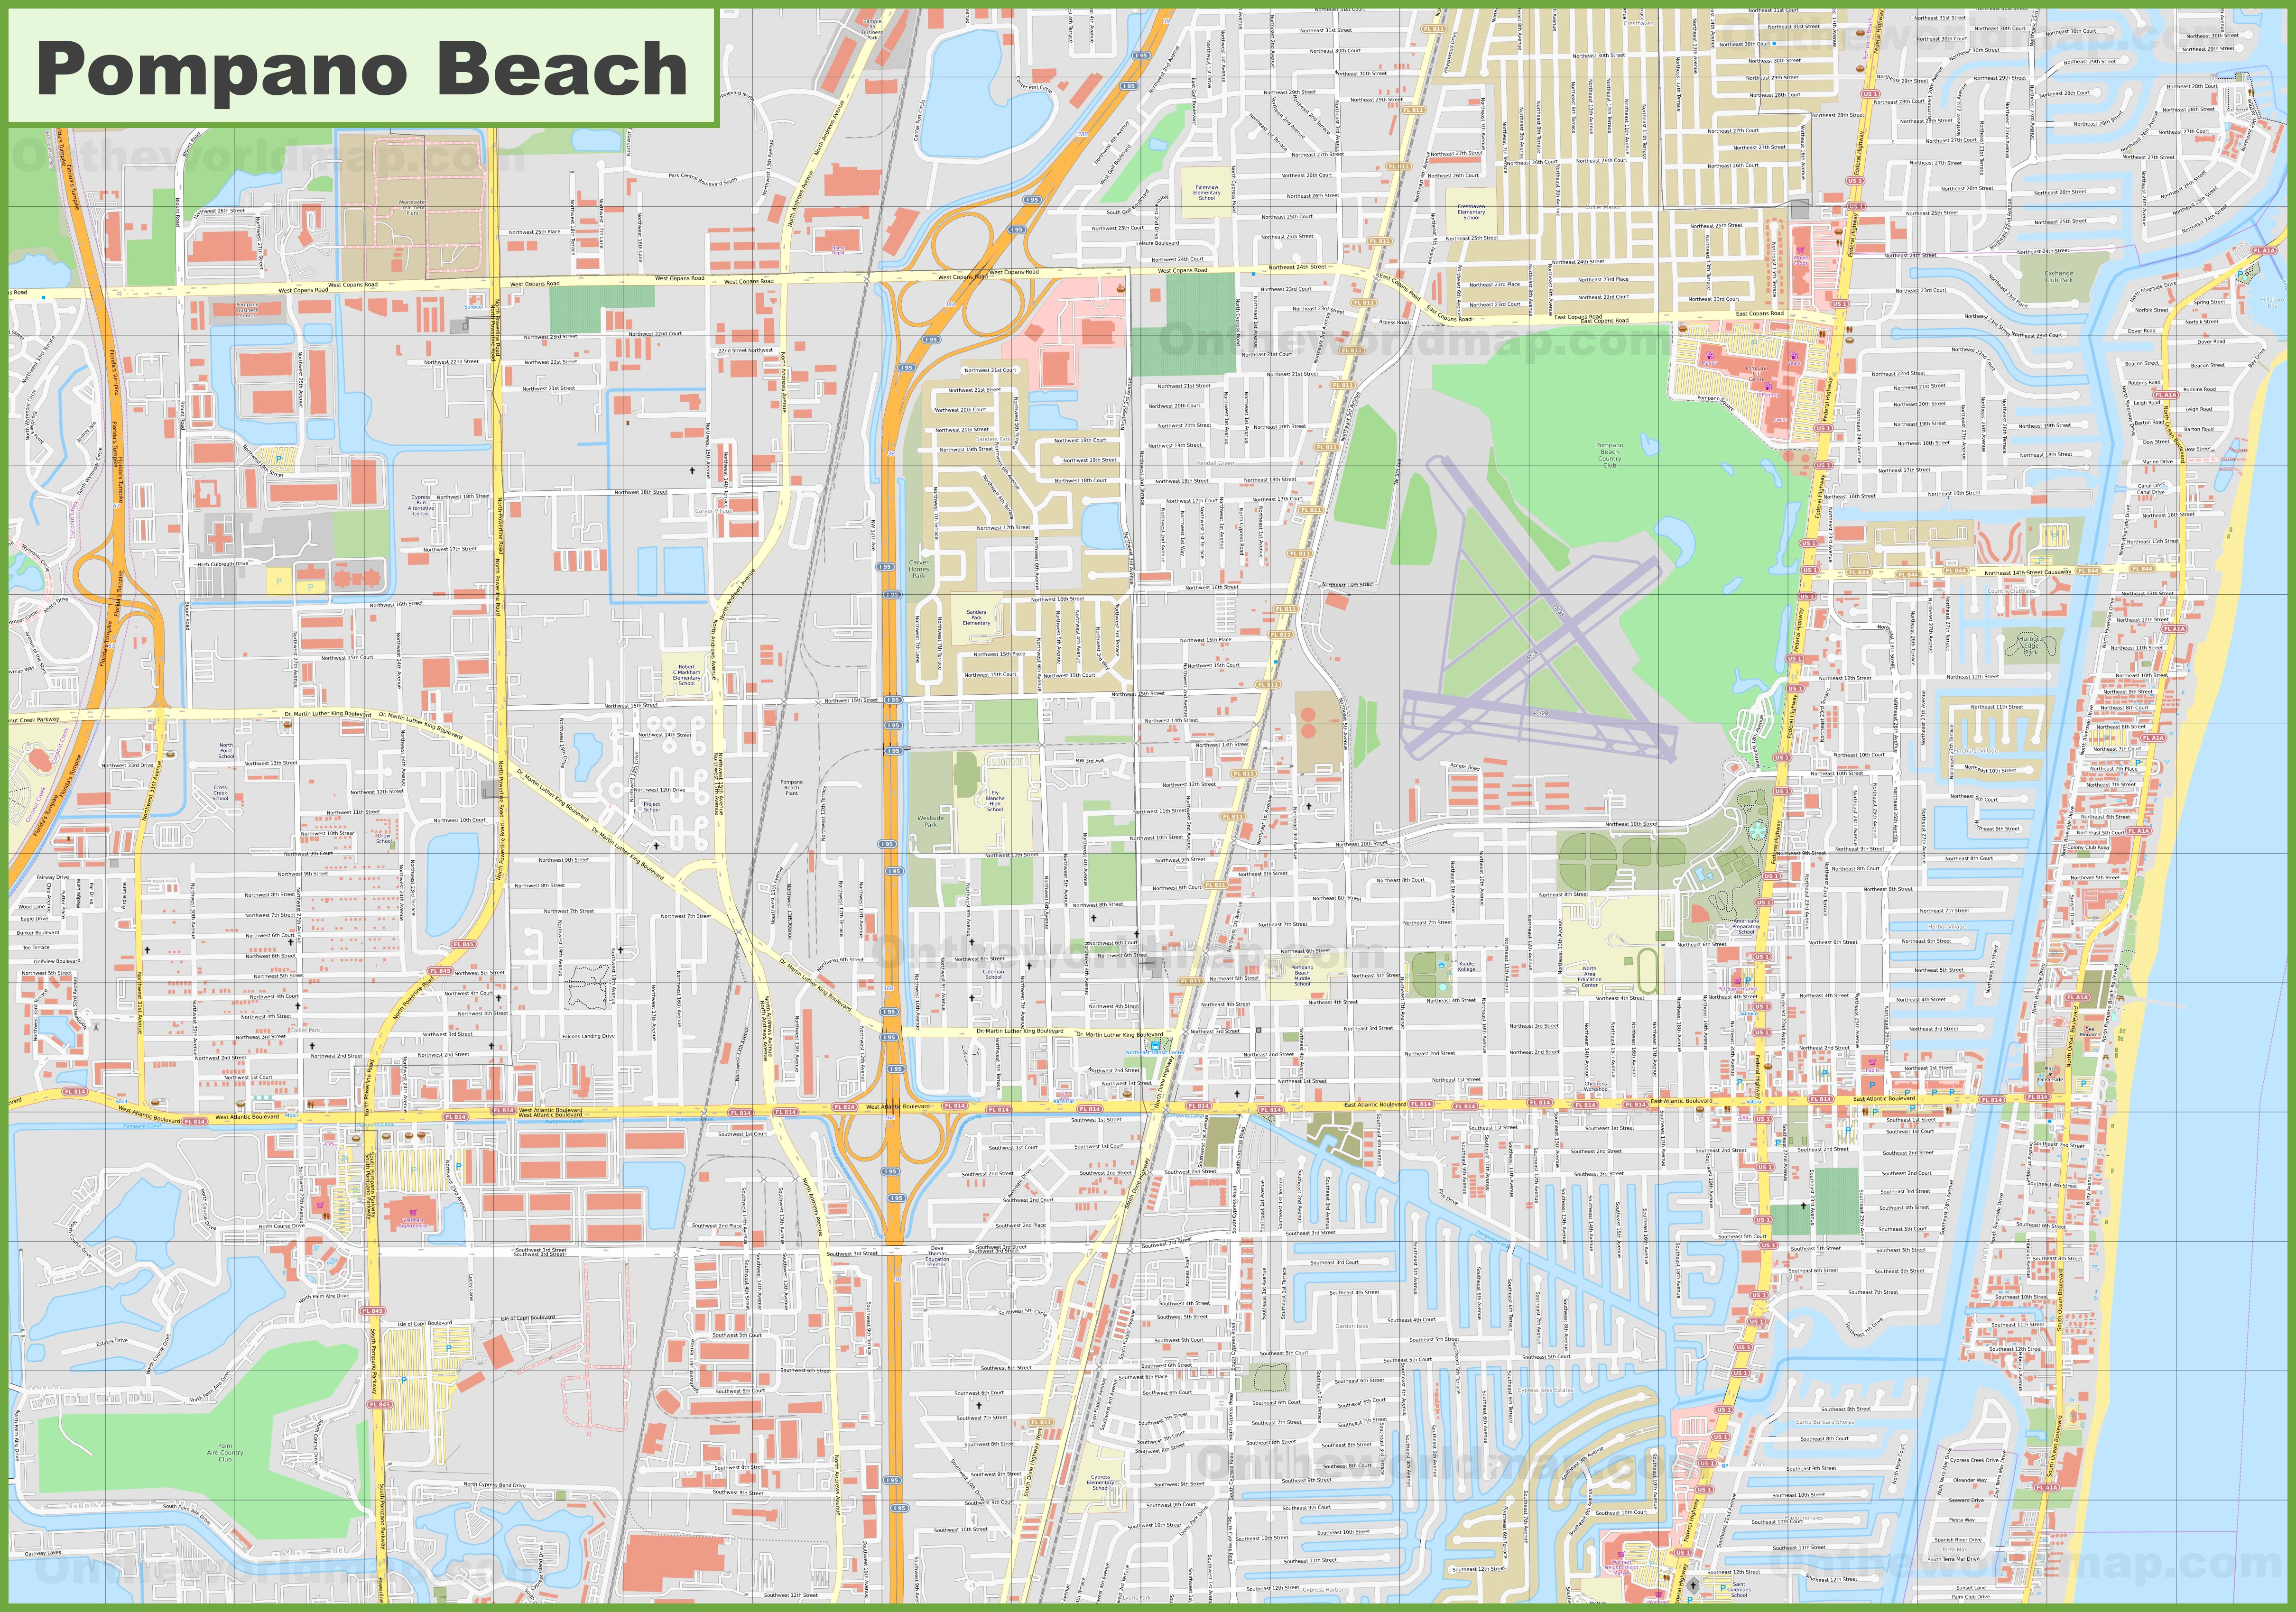 Map Of Pompano Beach Florida Large detailed map of Pompano Beach